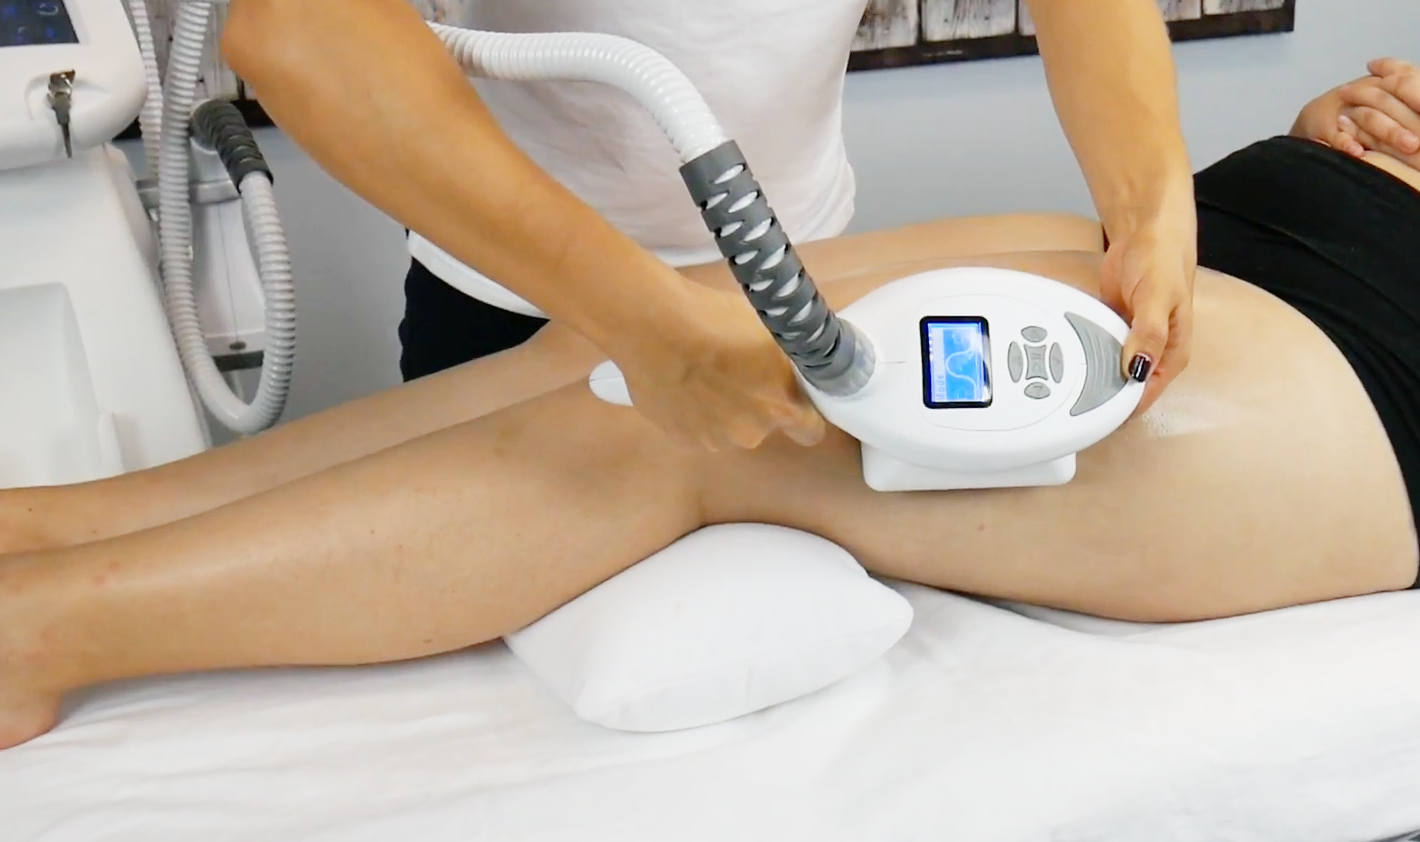 Lipomassage for Body Sculpting with Endermologie Machines